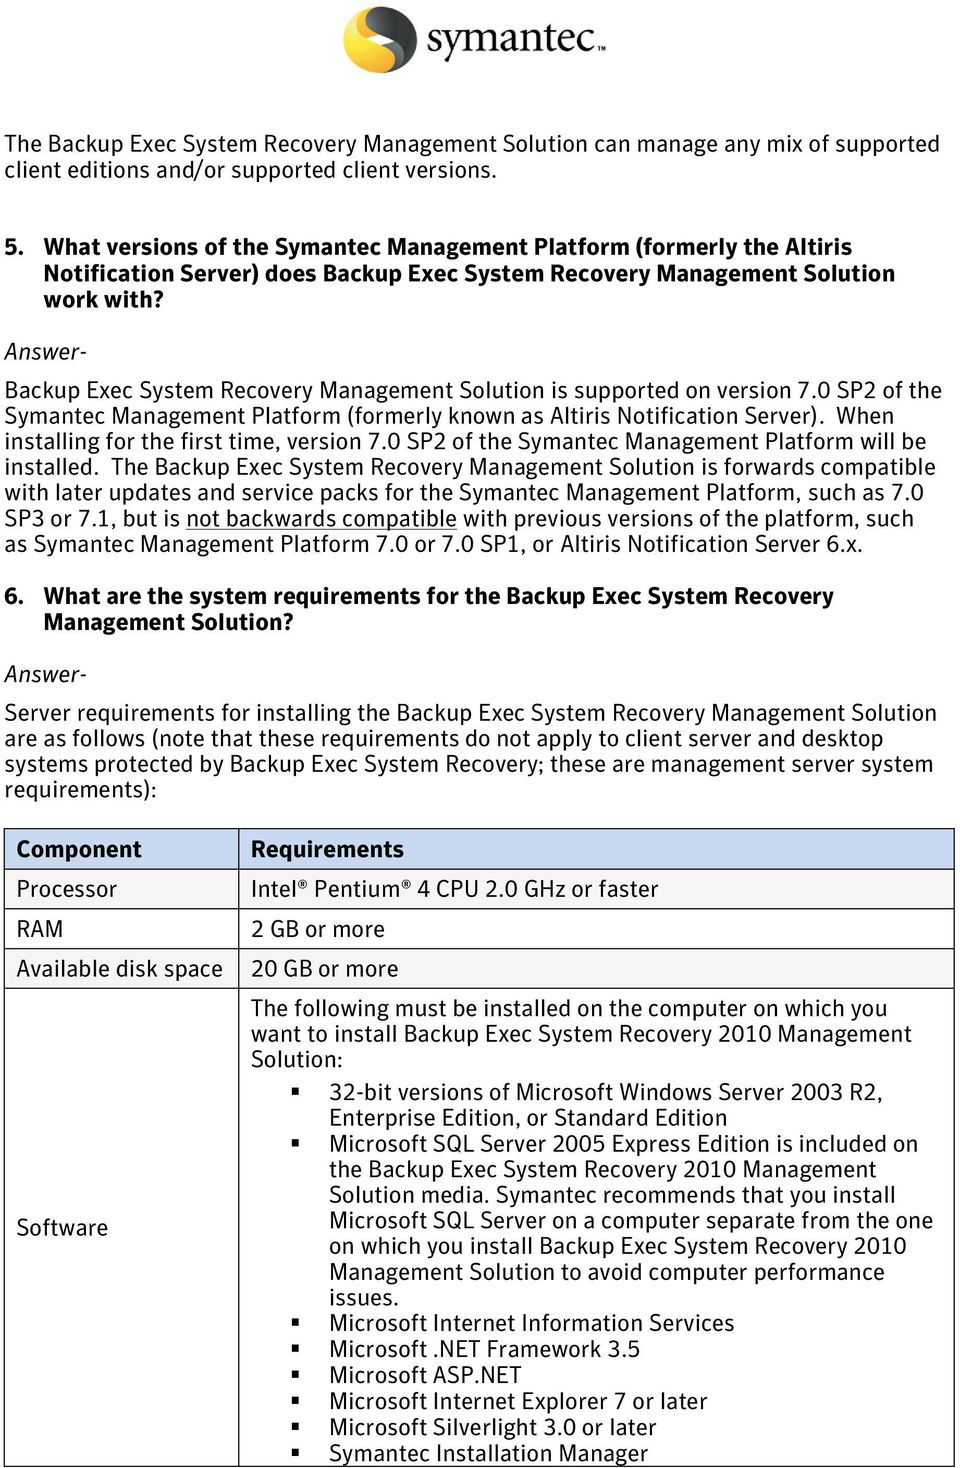 Backup Exec System Recovery Management Solution is supported on version 7.0 SP2 of the Symantec Management Platform (formerly known as Altiris Notification Server).